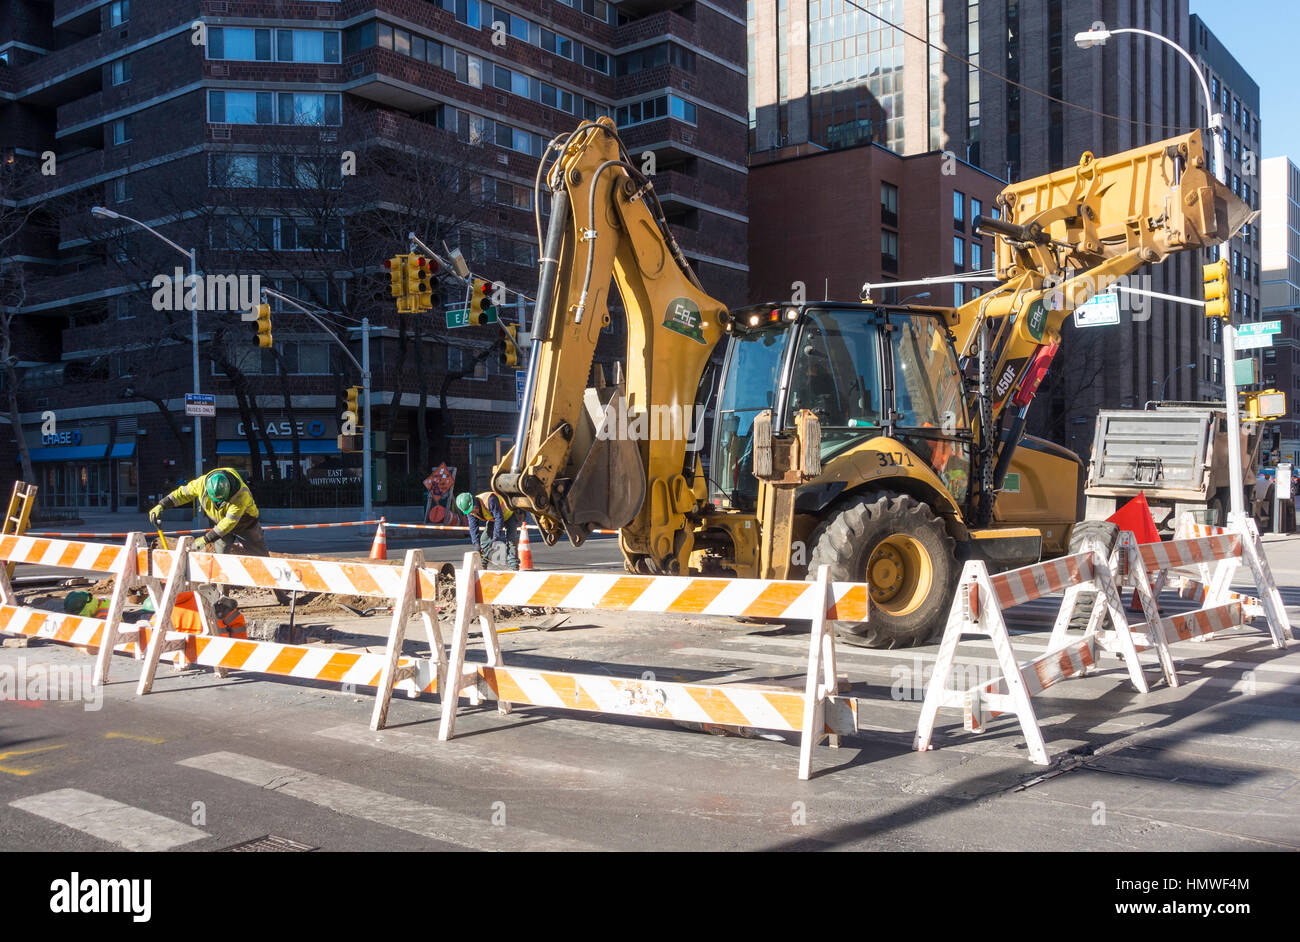 construction-work-on-the-infrastructure-